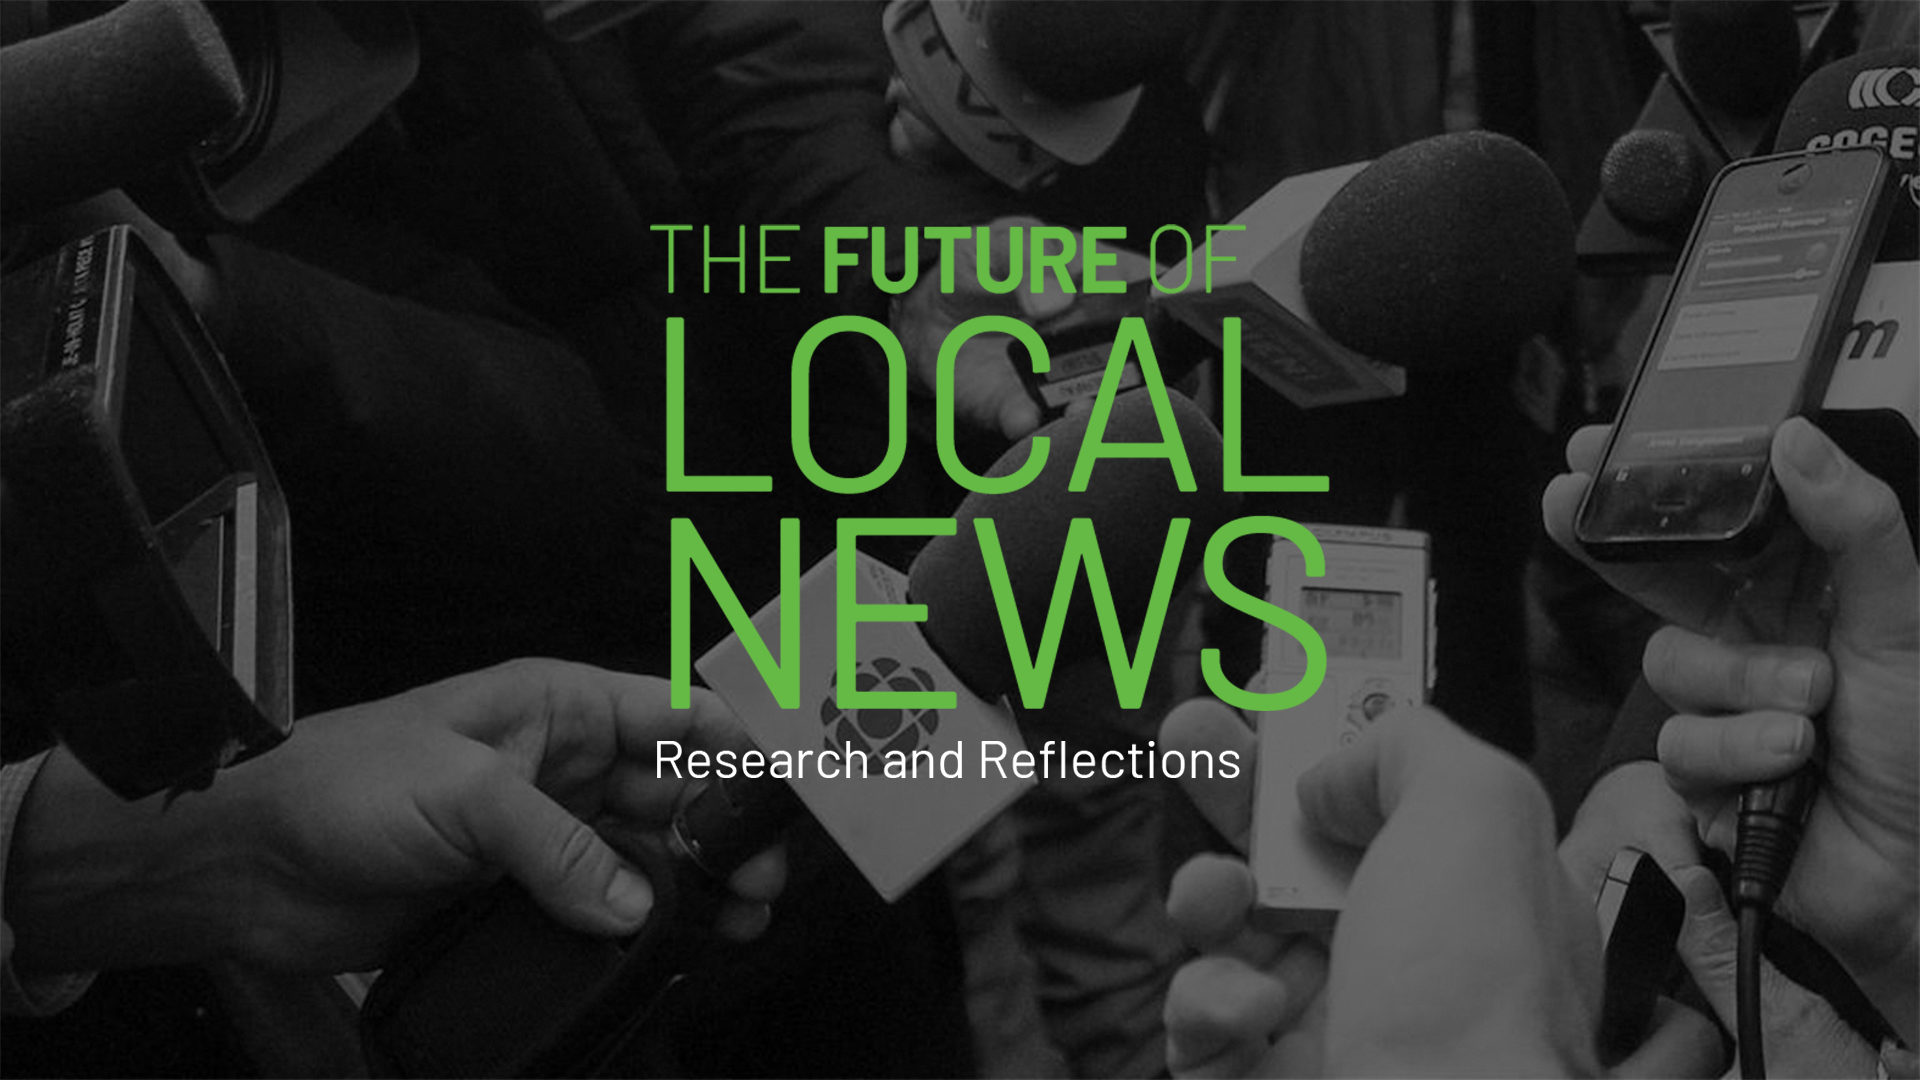 The Future of Local News: Research and Reflections